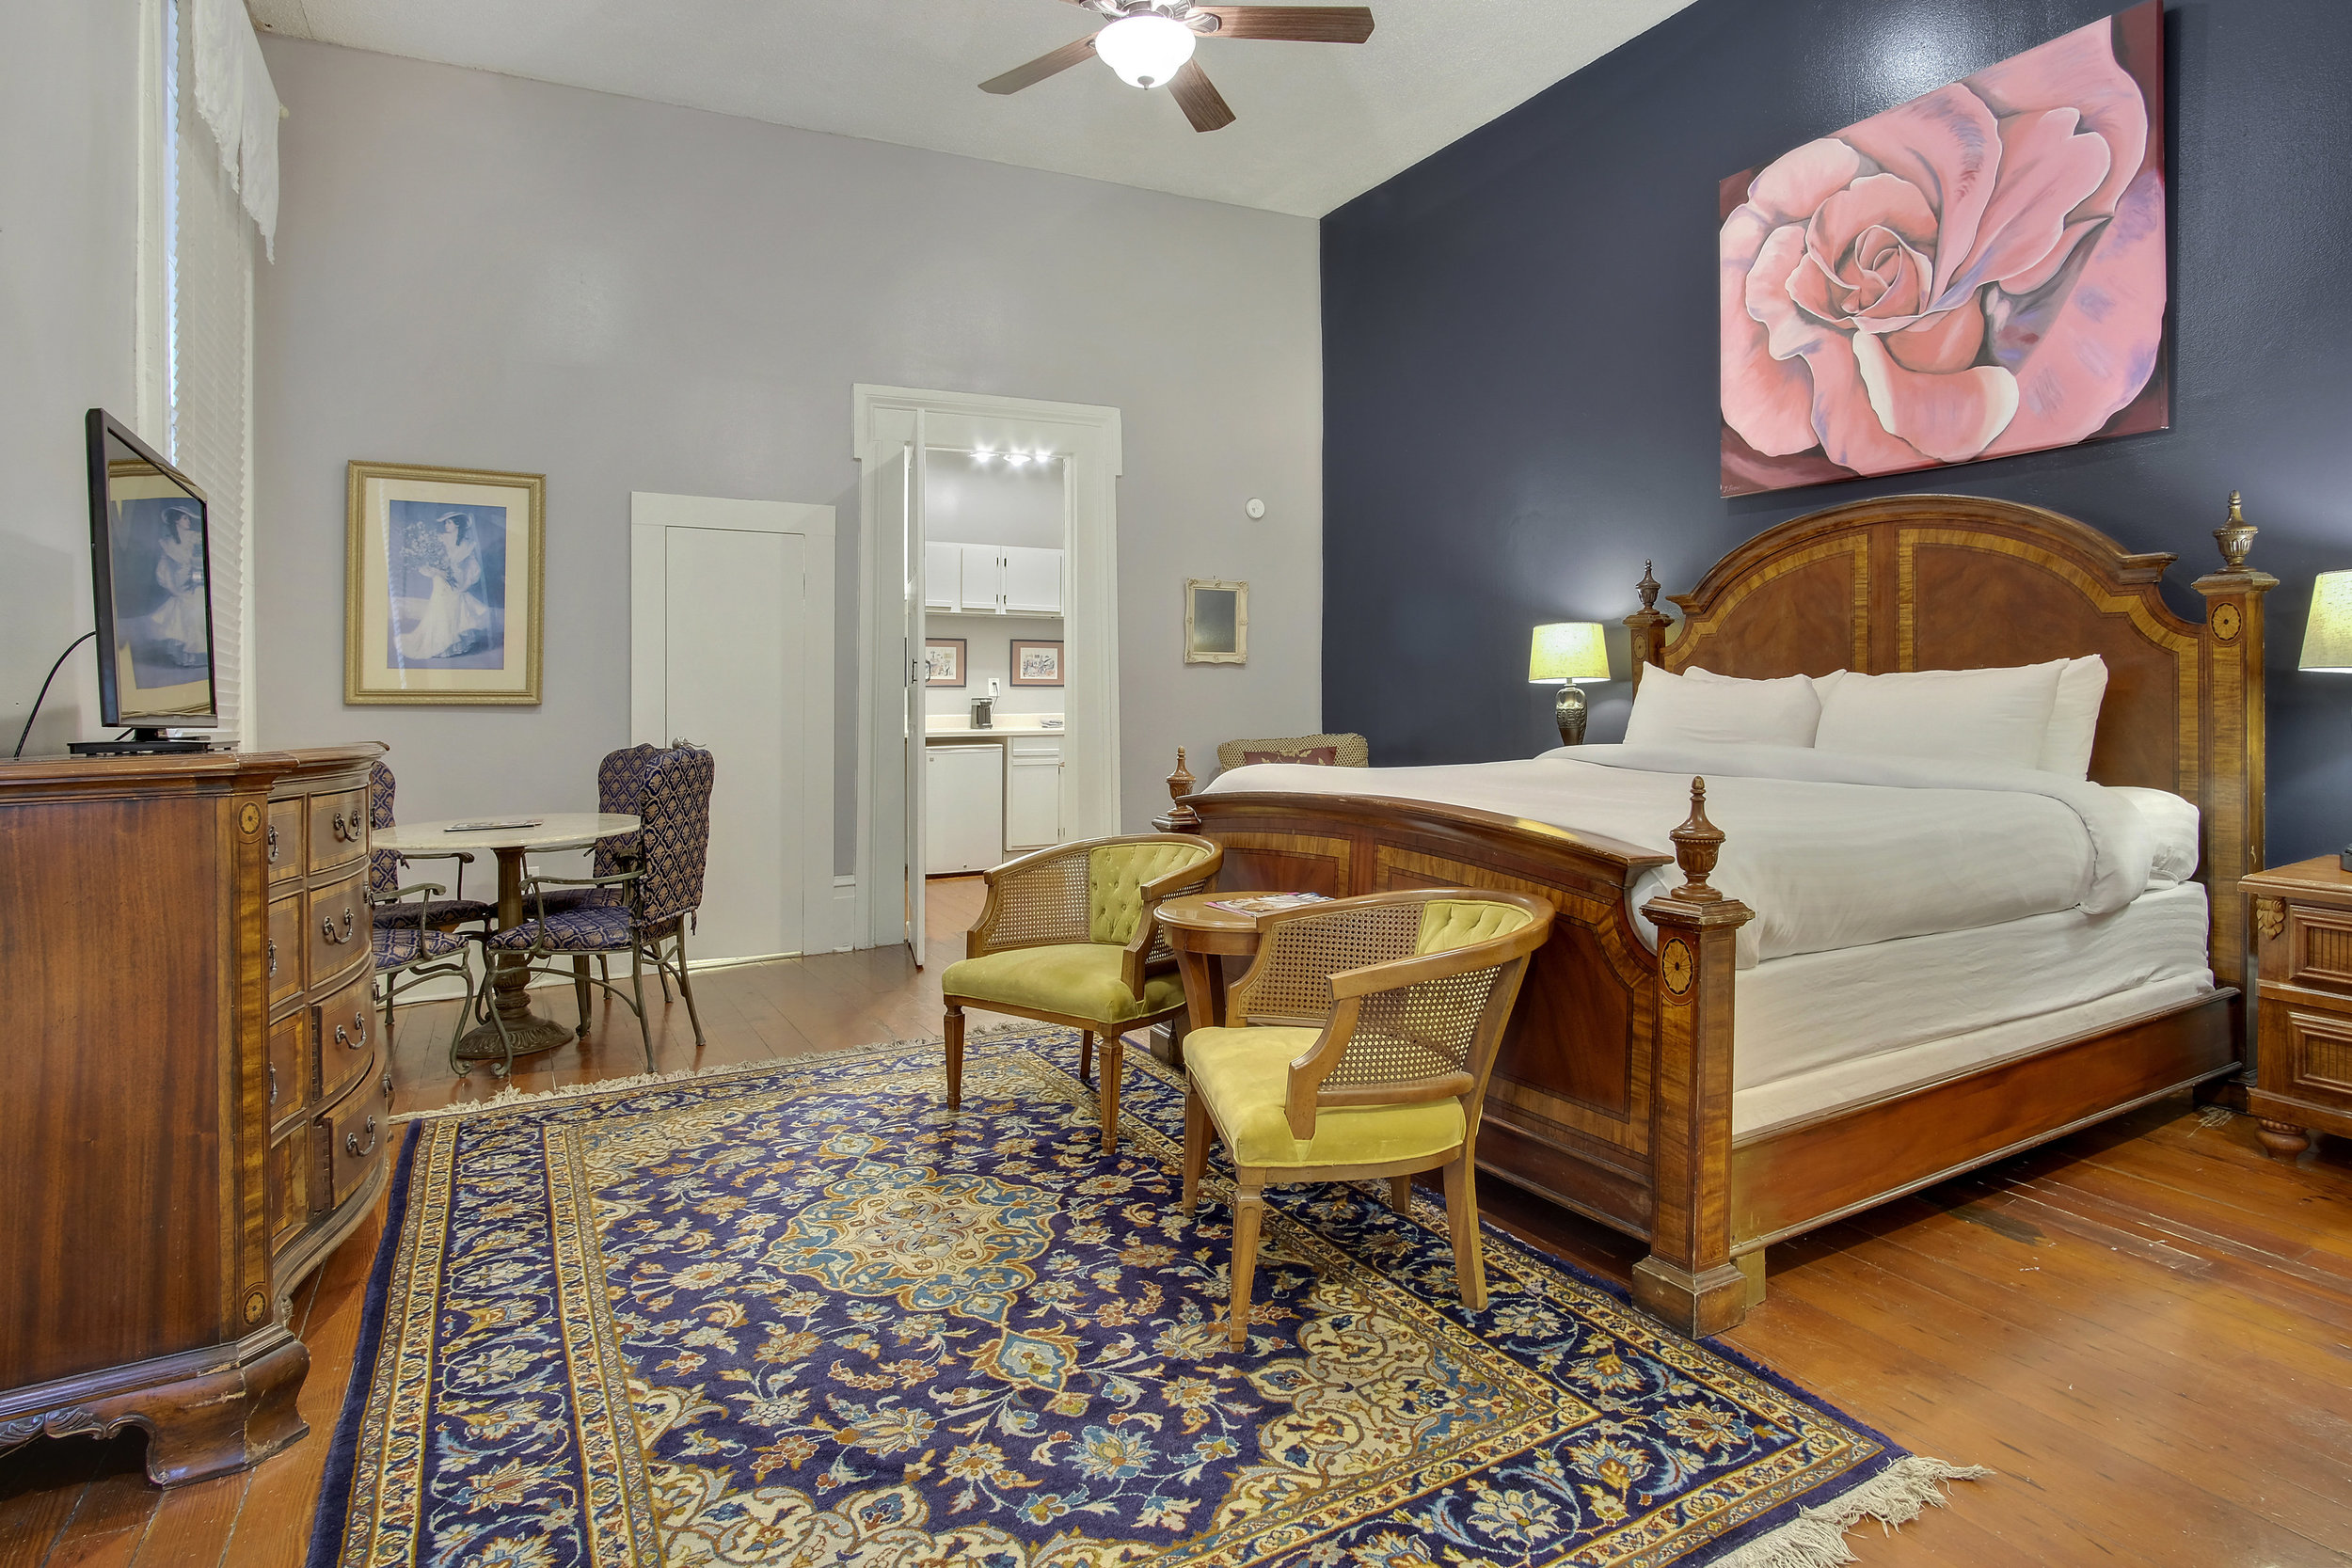 superior King - rathbone mansions hotel new orleans